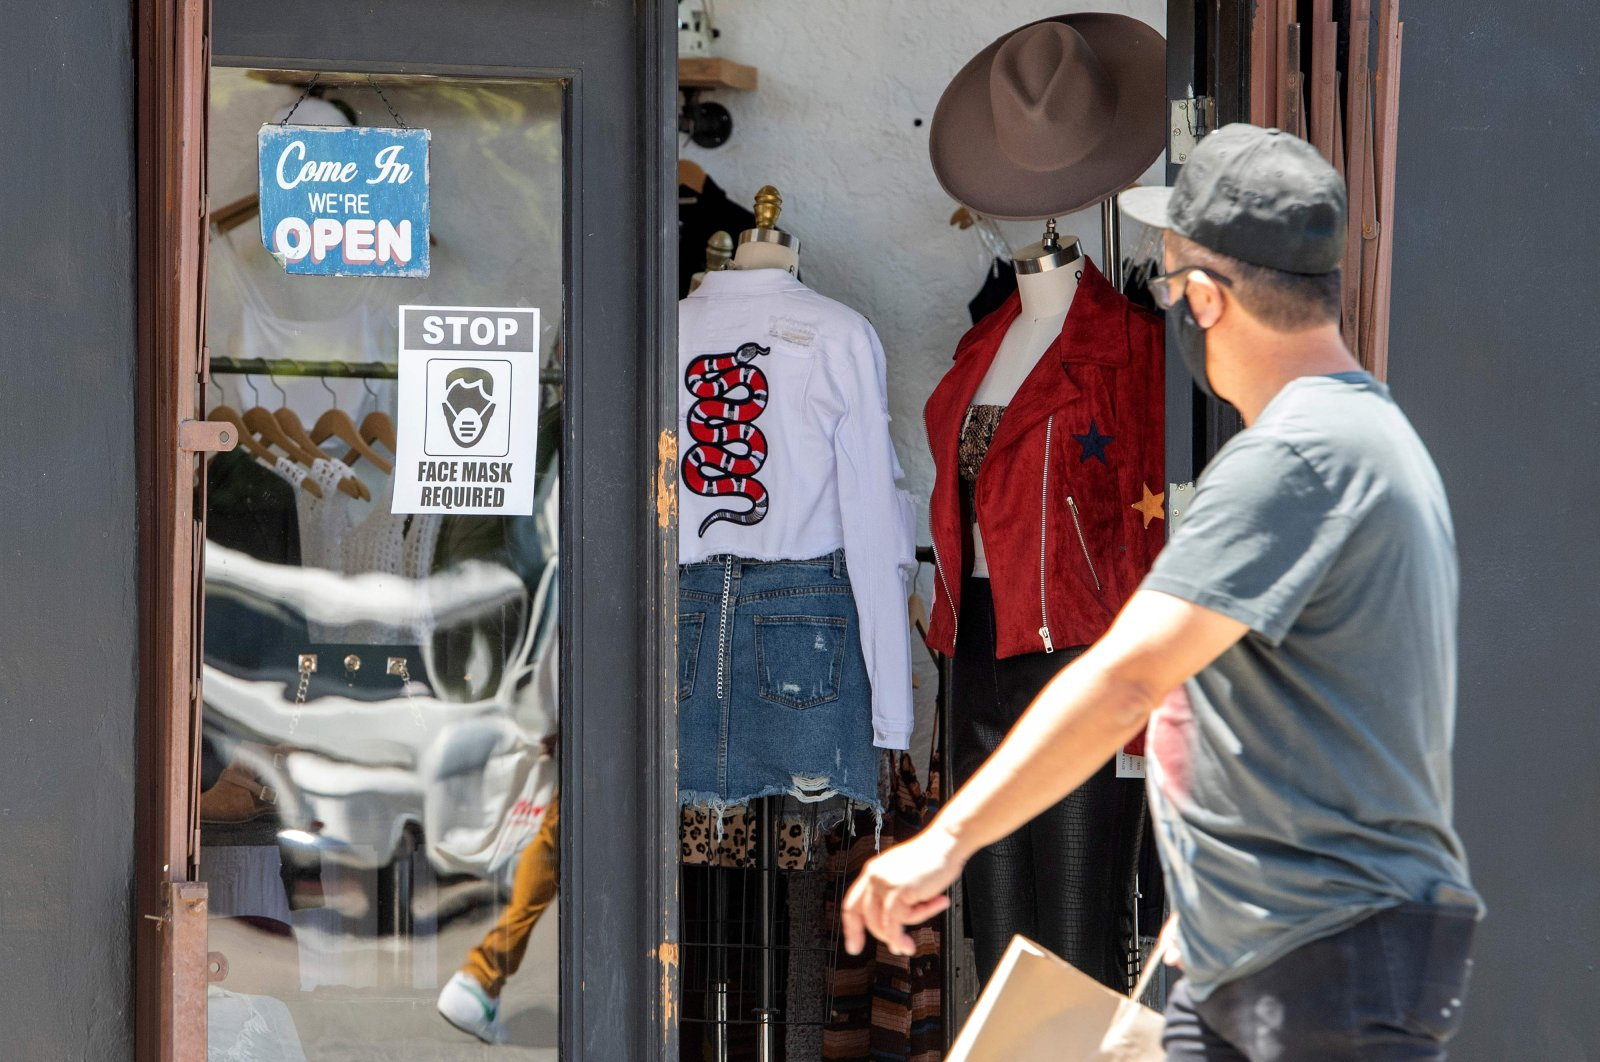 A man wearing a mask walks by a store requiring shoppers wear masks during the coronavirus pandemic, Los Angeles, California, May 27, 2020. (AFP Photo)